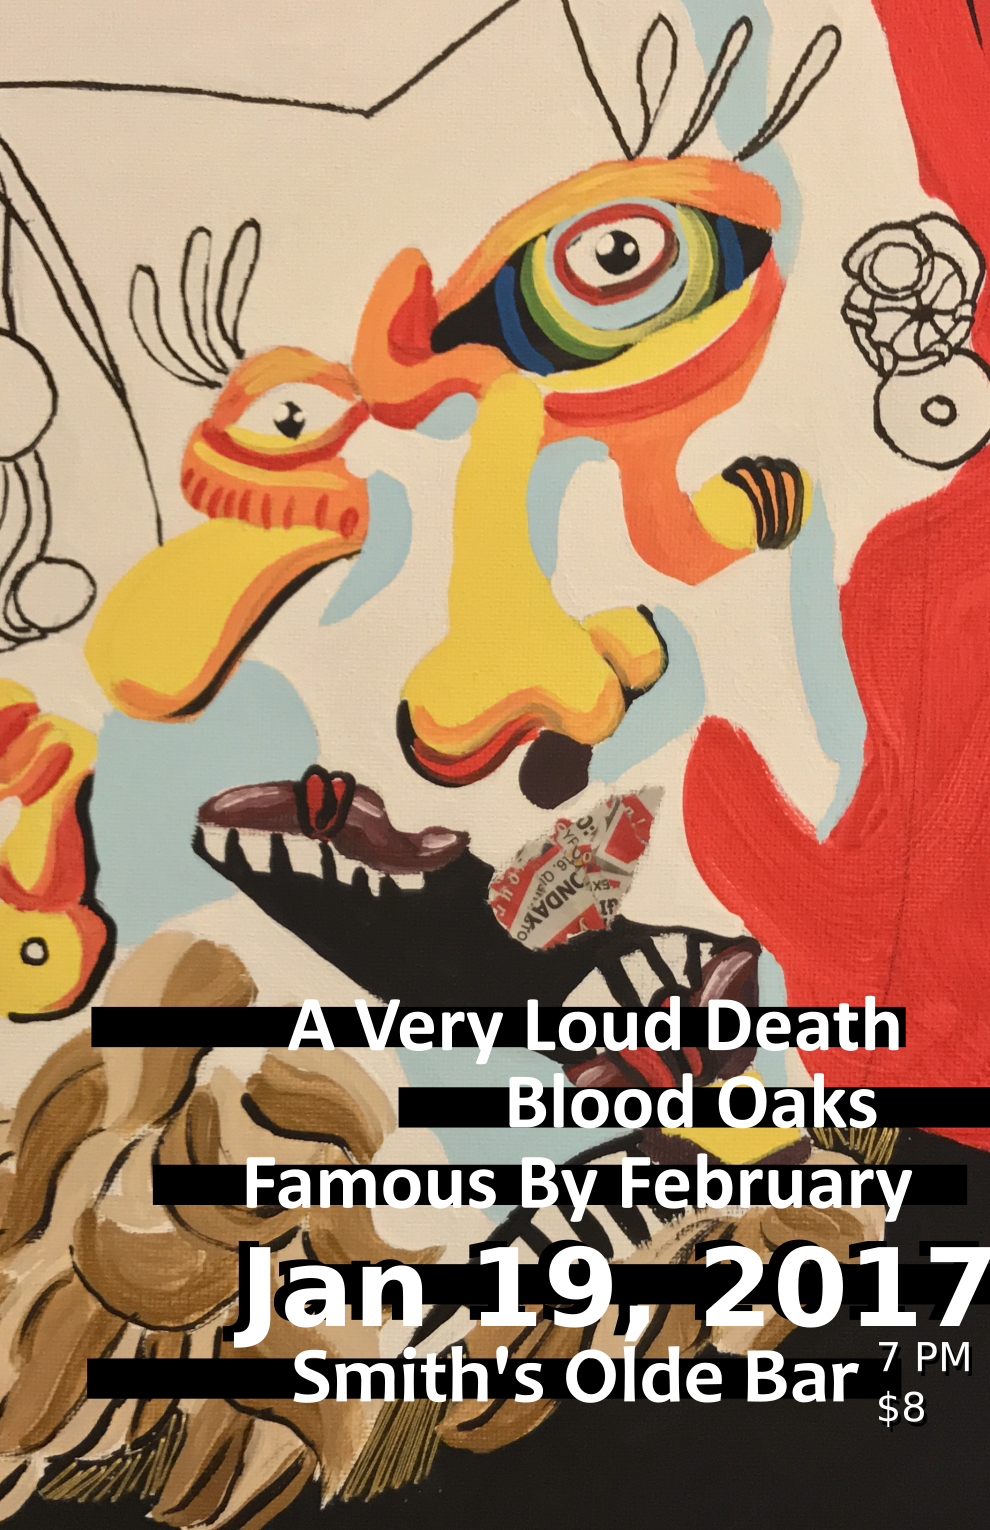 A Very Loud Death – The Smith's Olde Bar Flyer